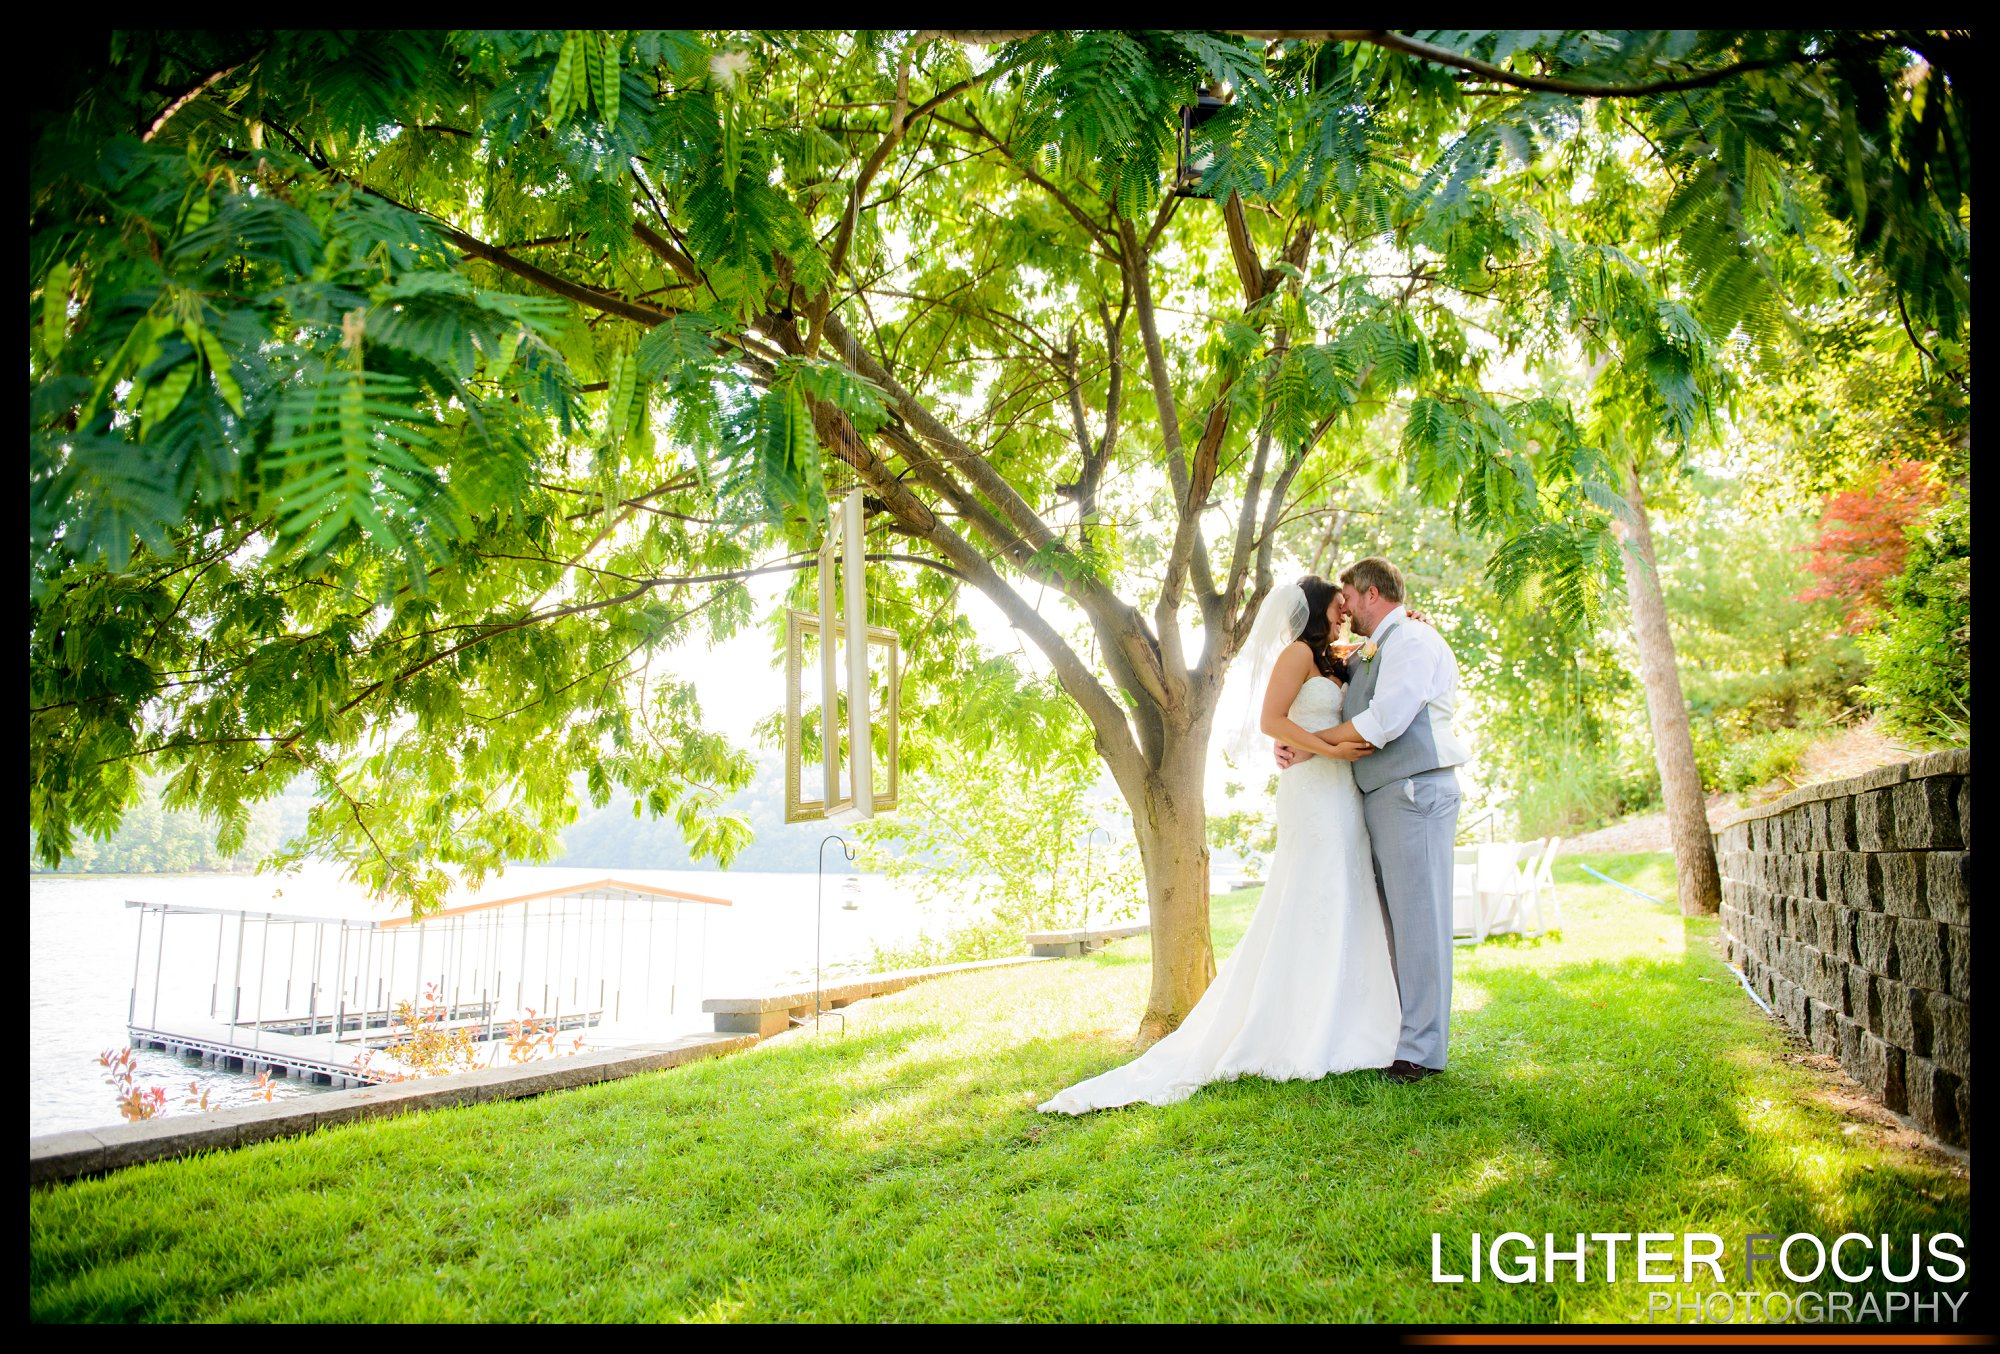 Brian & McKenzie | Lake of the Ozarks Wedding | Lighter Focus